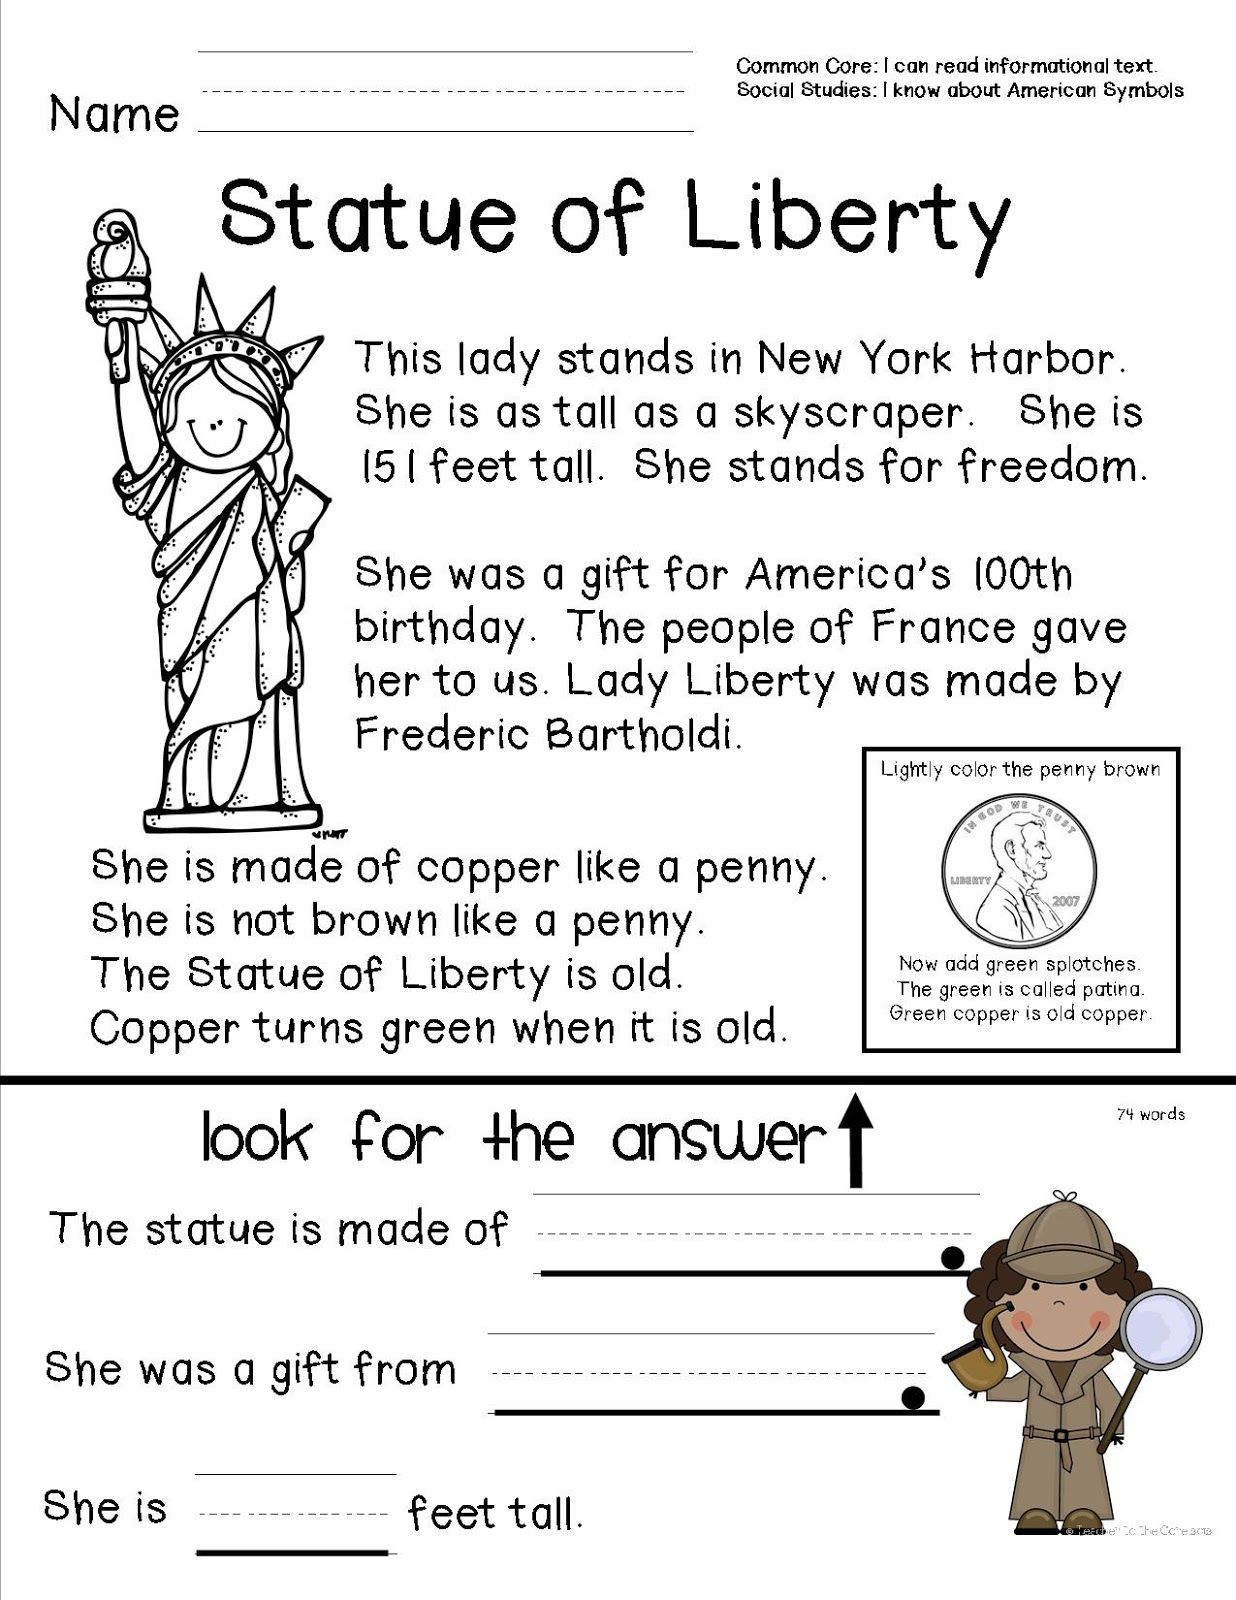 First Grade History Worksheets American Symbols With Images In 2020 Social Studies Worksheets Kindergarten Social Studies History Worksheets